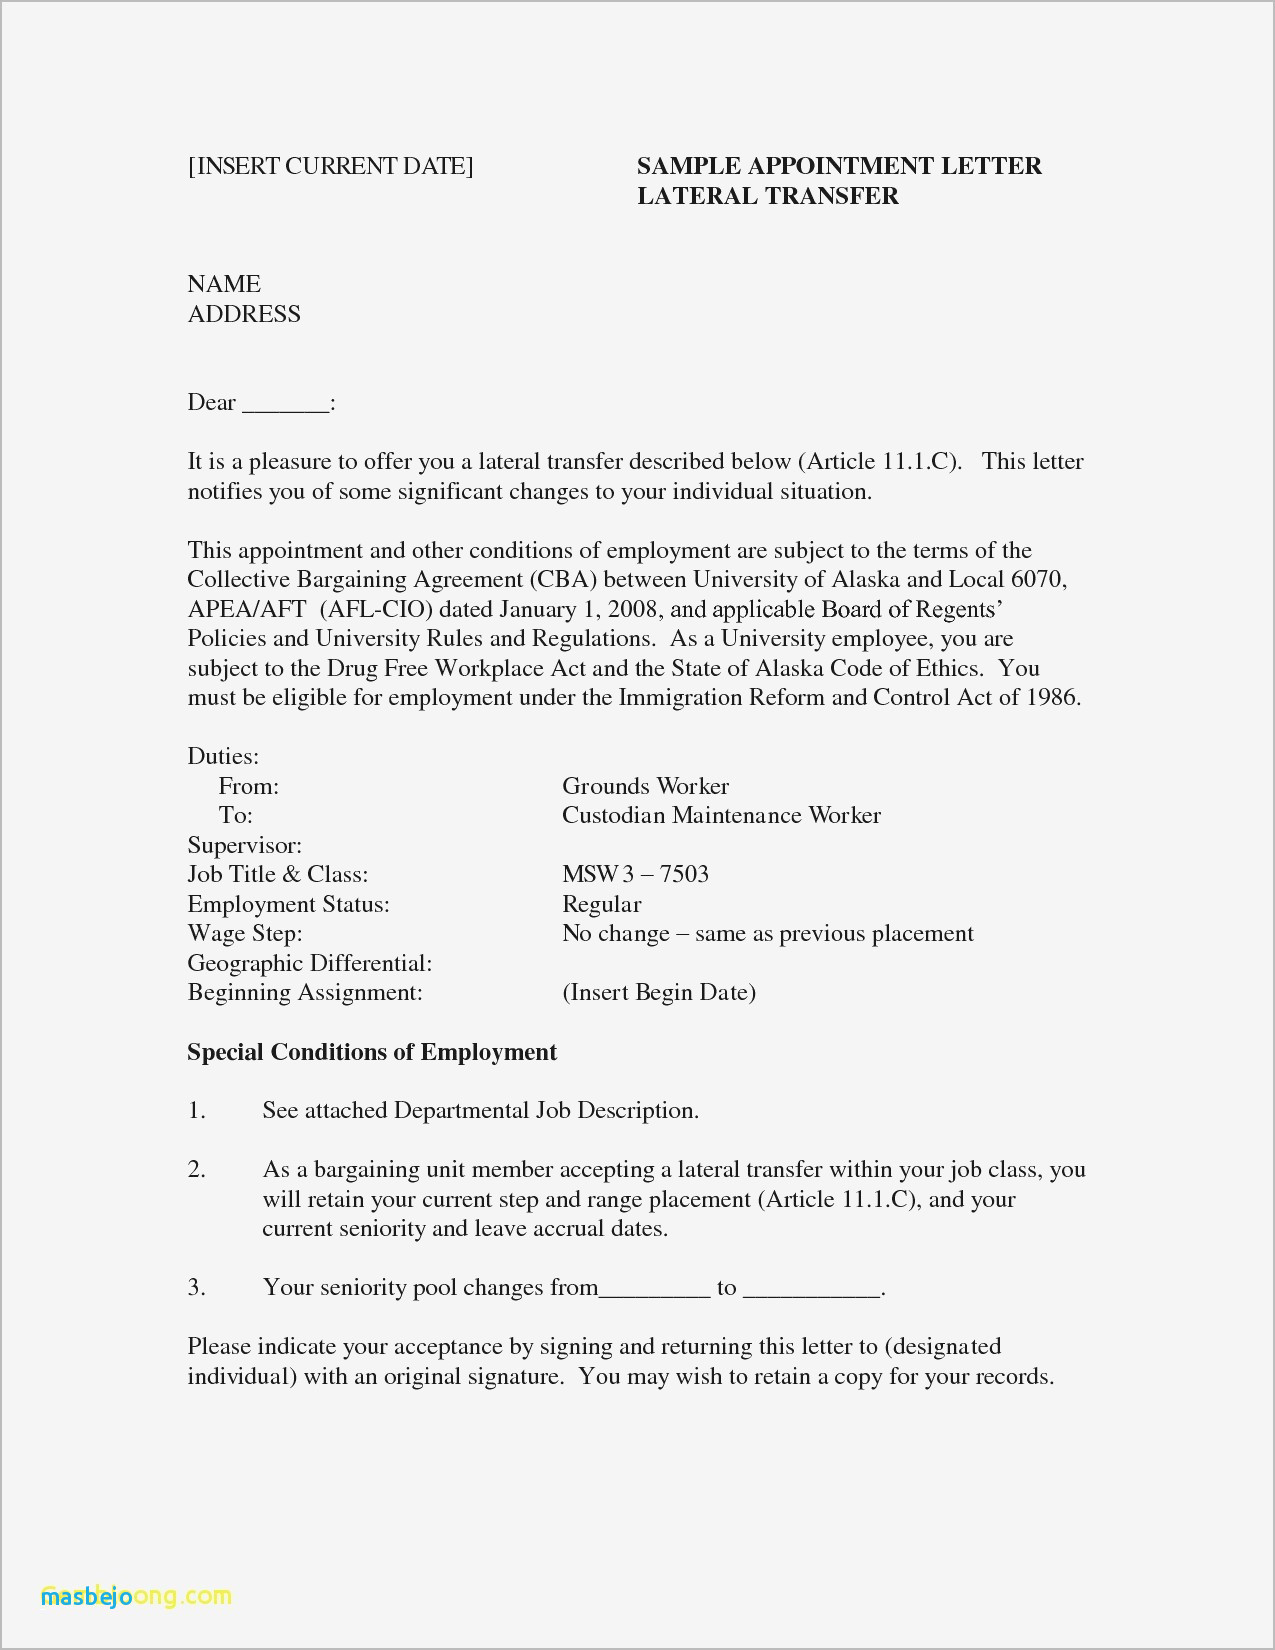 Resume for Correctional Officer - Correctional Ficer Resume Correctional Ficer Job Description